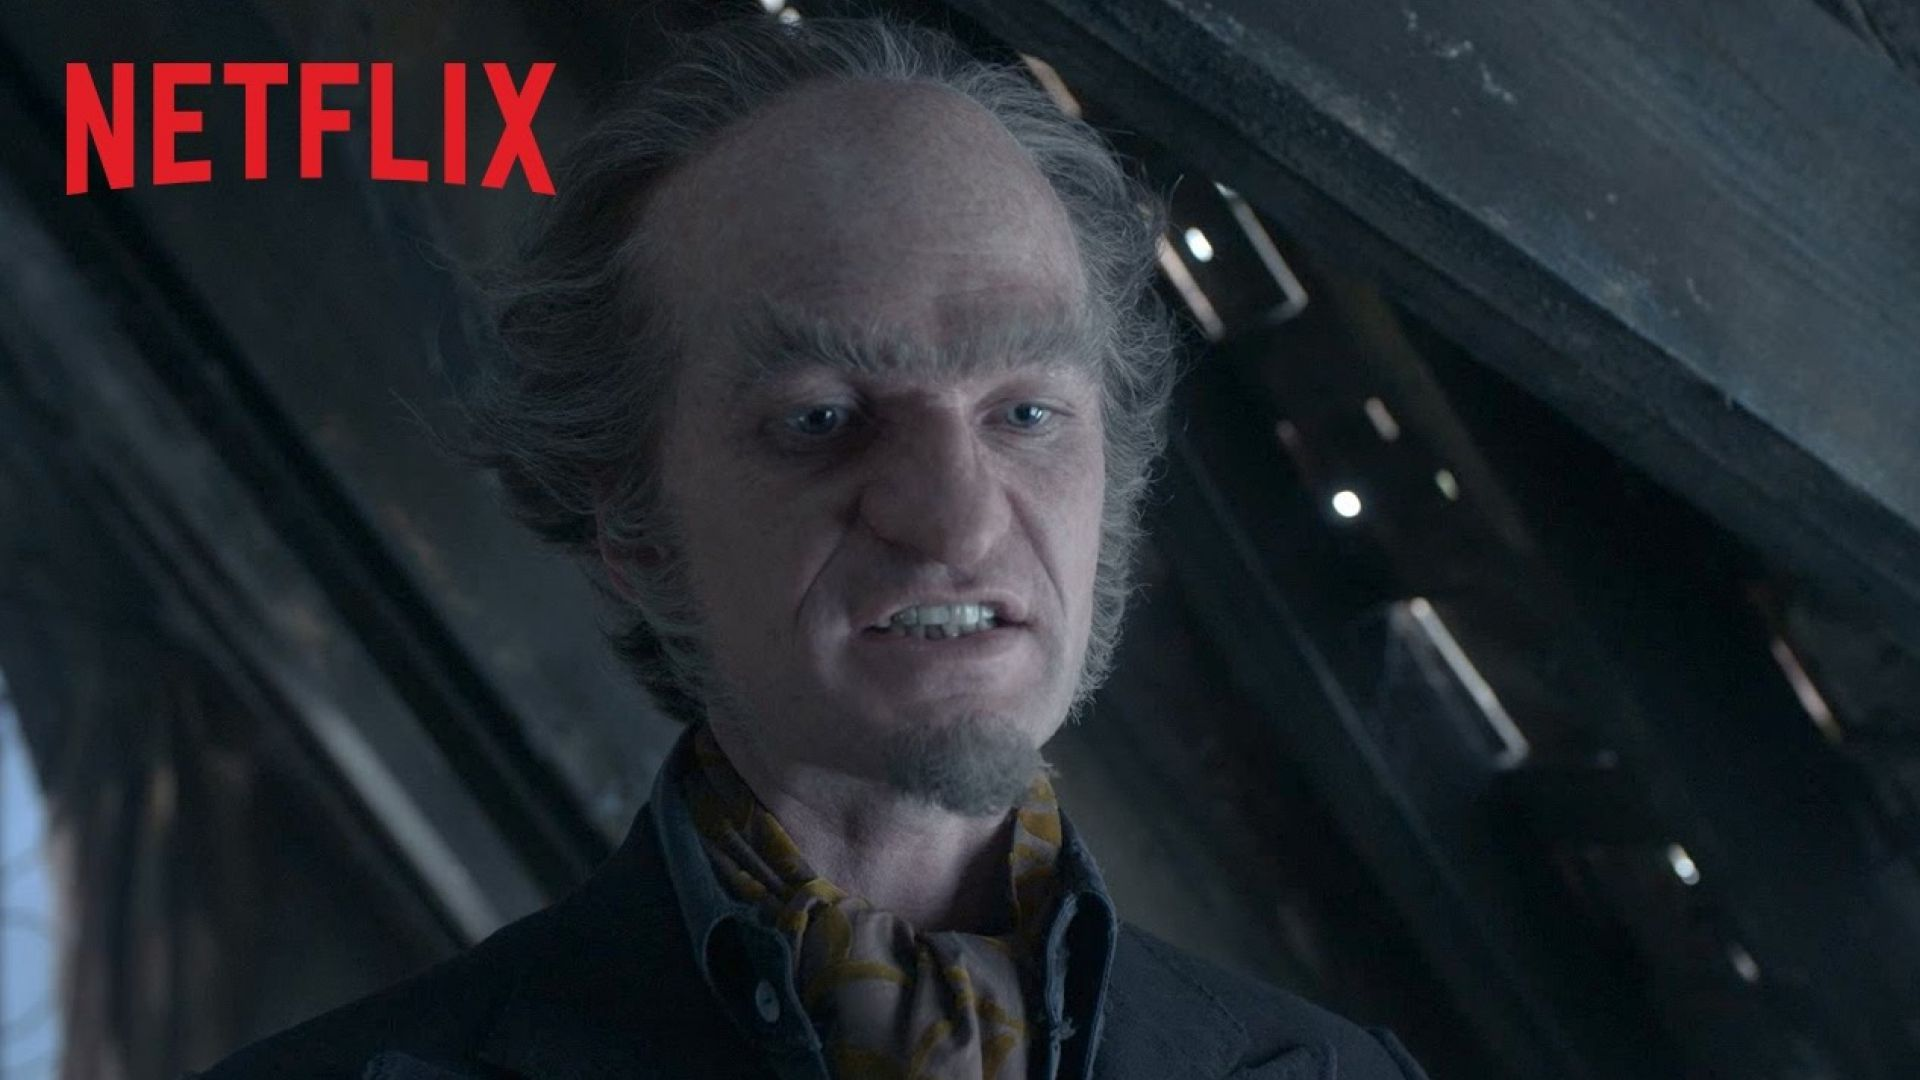 Netflix releases a new trailer for A Series of Unfortunate E